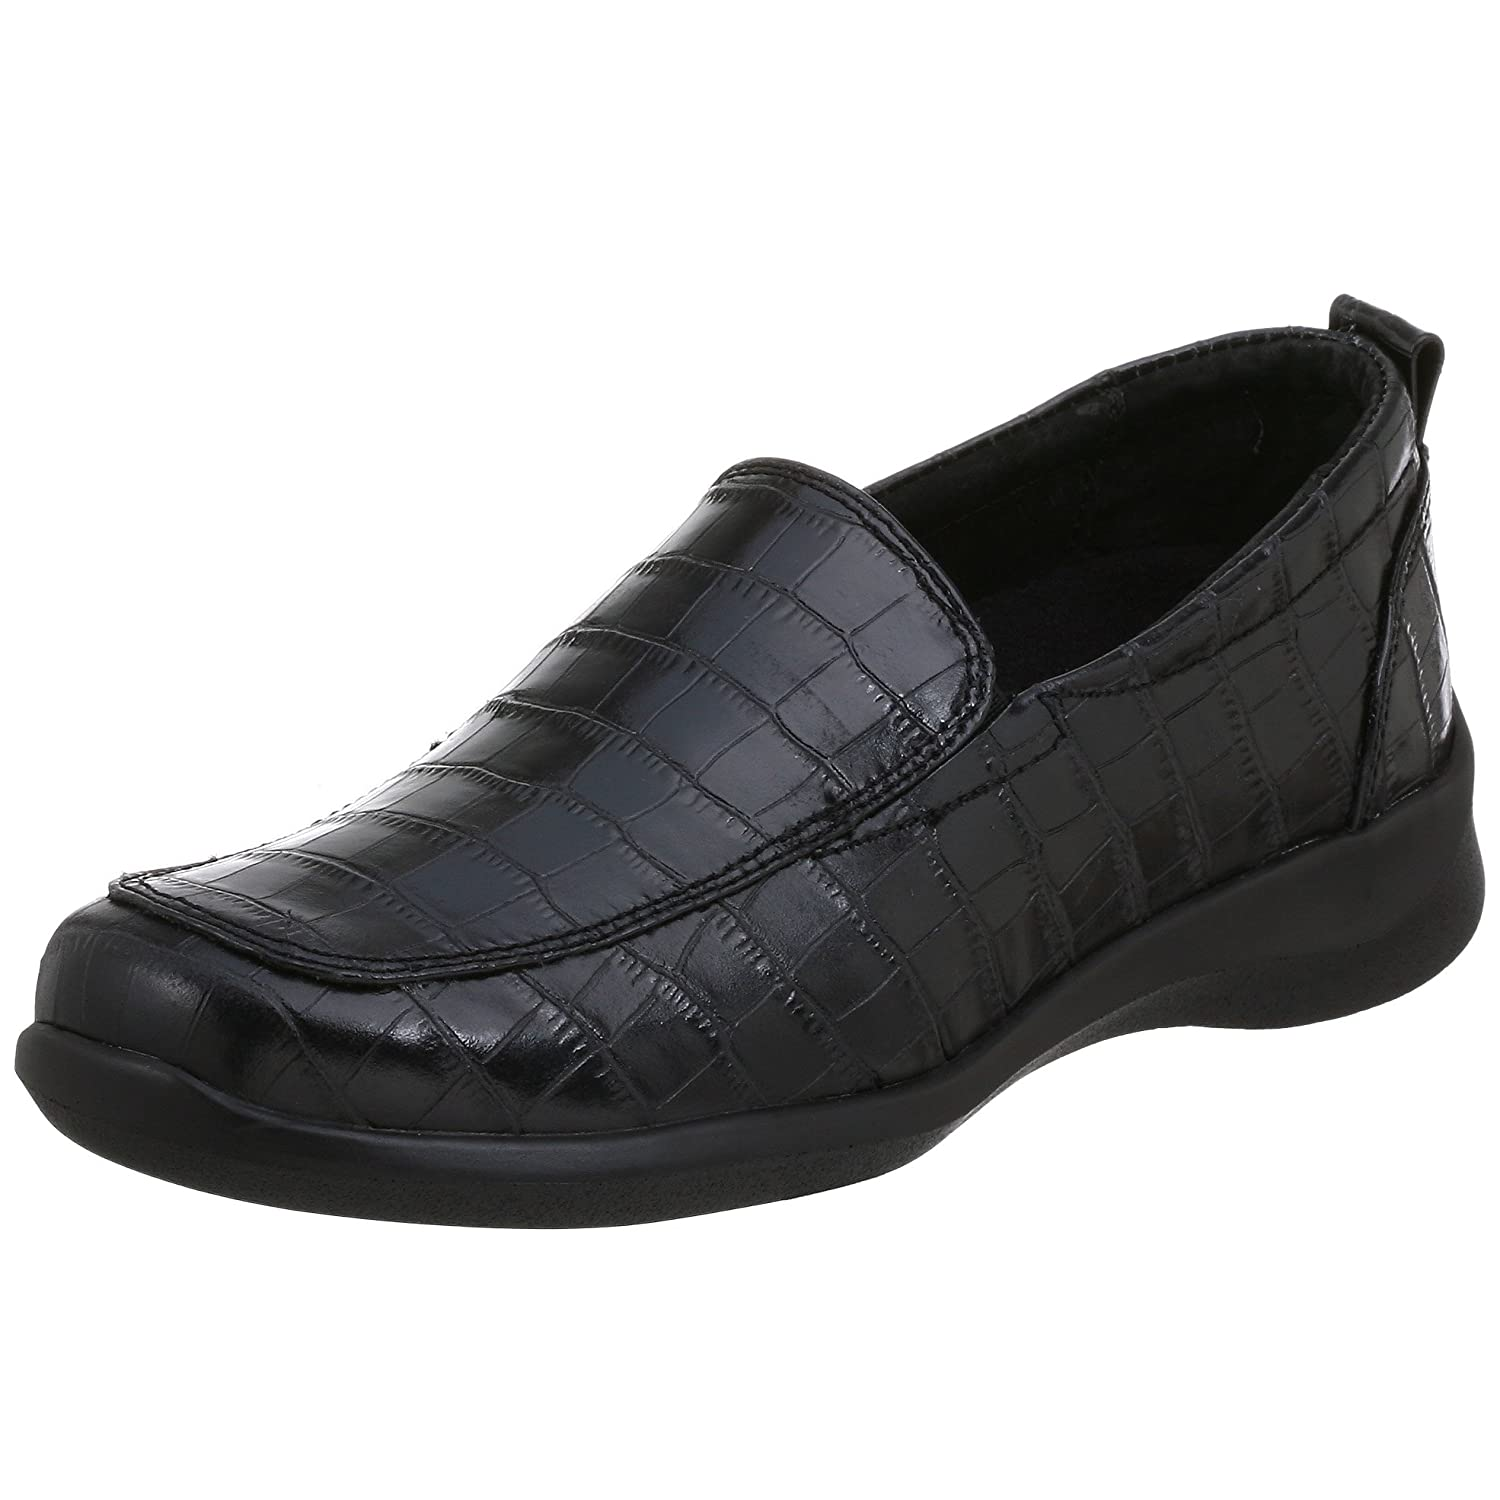 Aetrex Women's E220 Rosalynn Leather Slip-on B0018MM4XA 4.5 B(M) US|Black Crocco